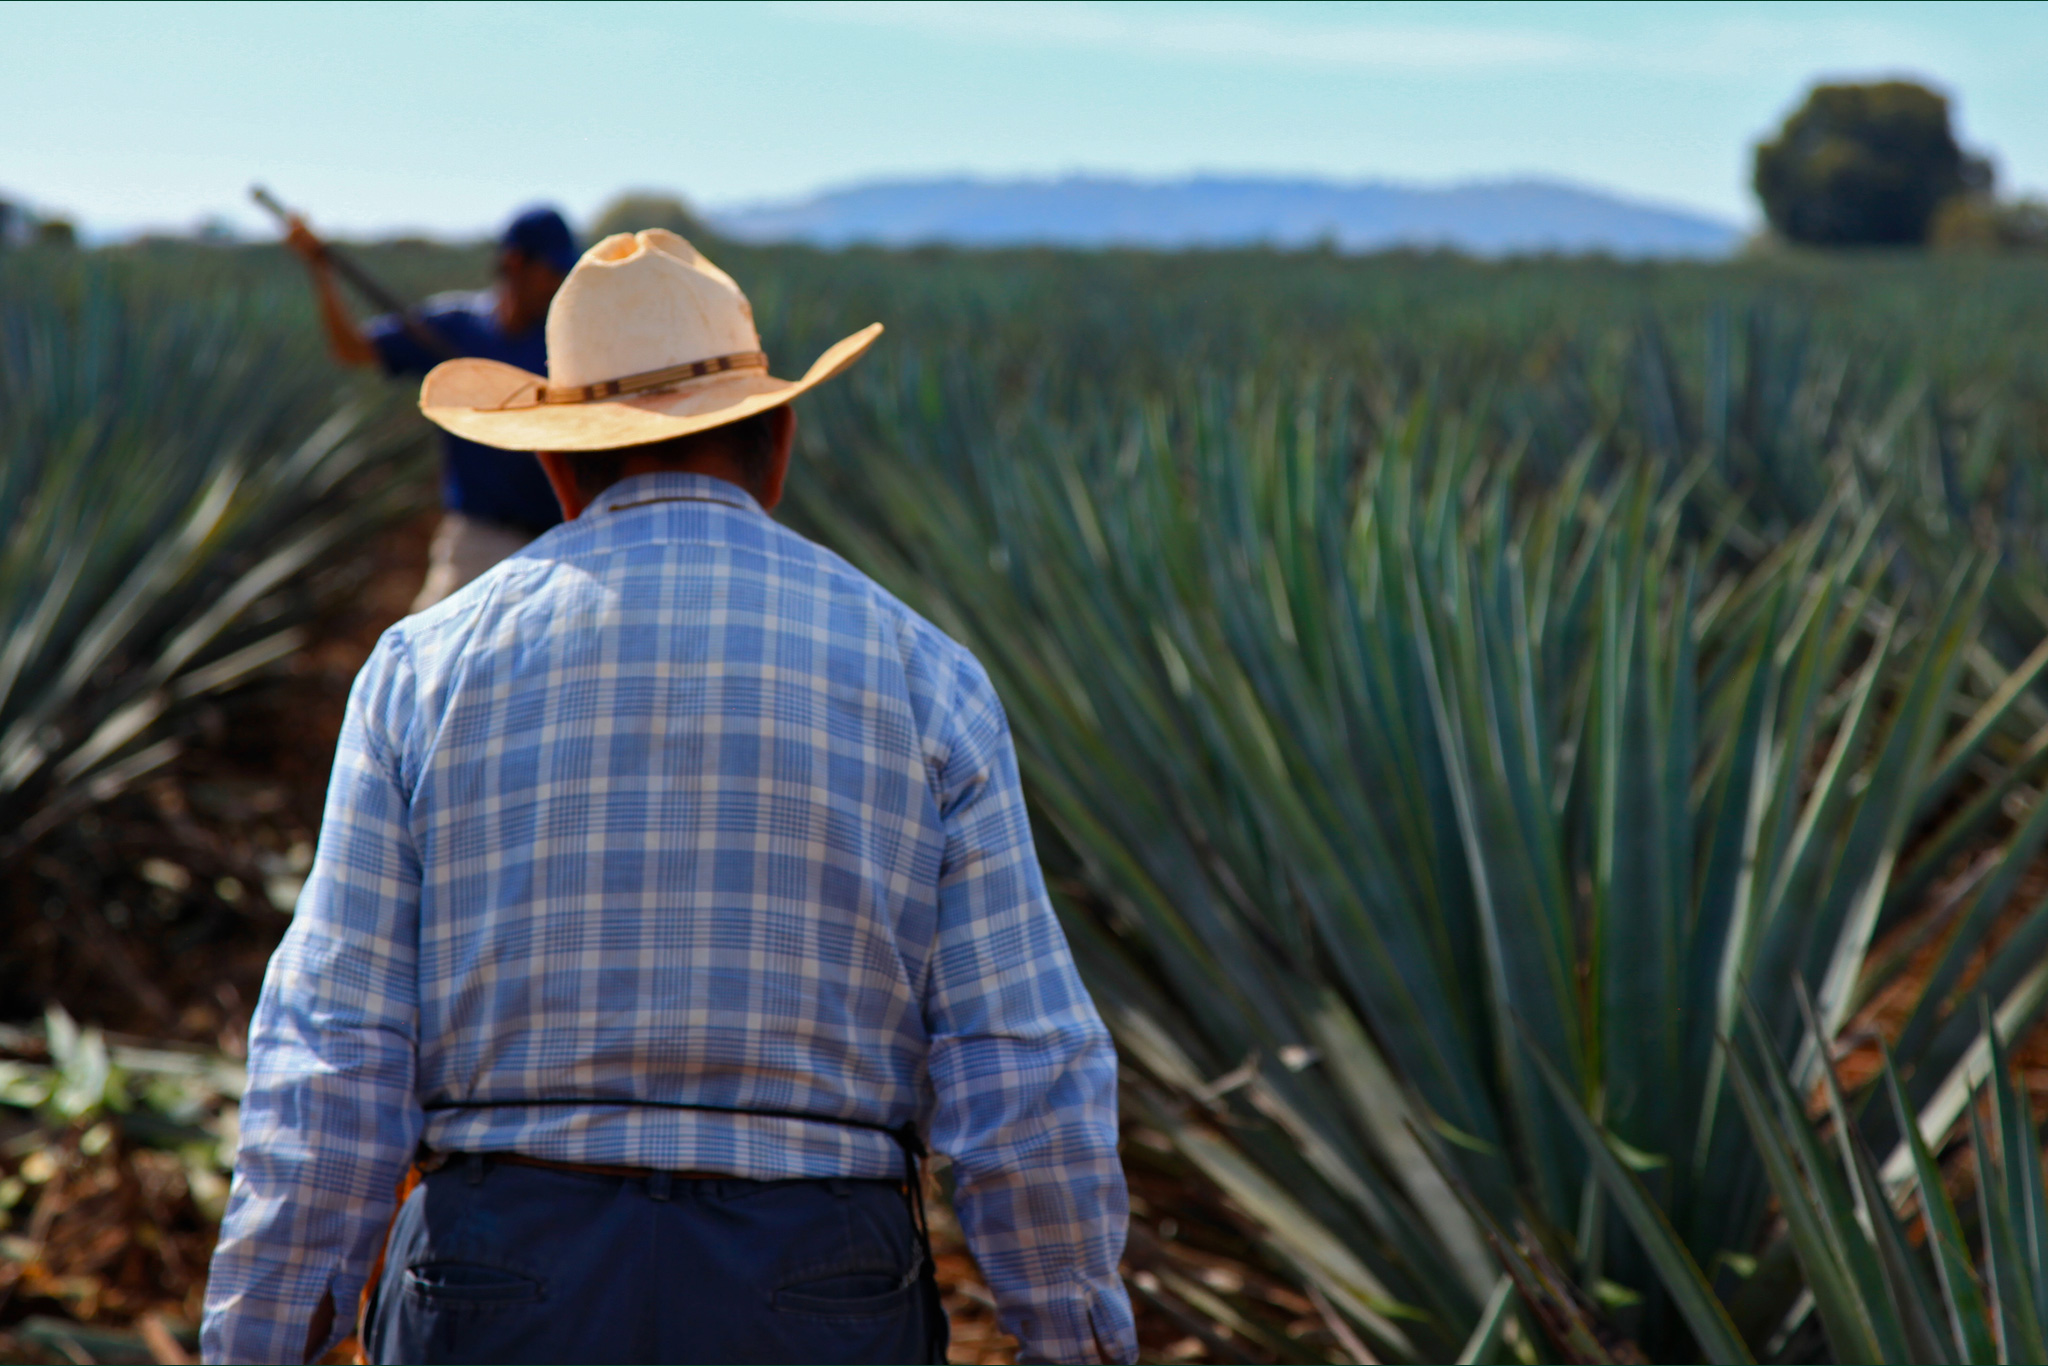 A jimador of the Sauza tequila distillery walking through a field of blue agave.